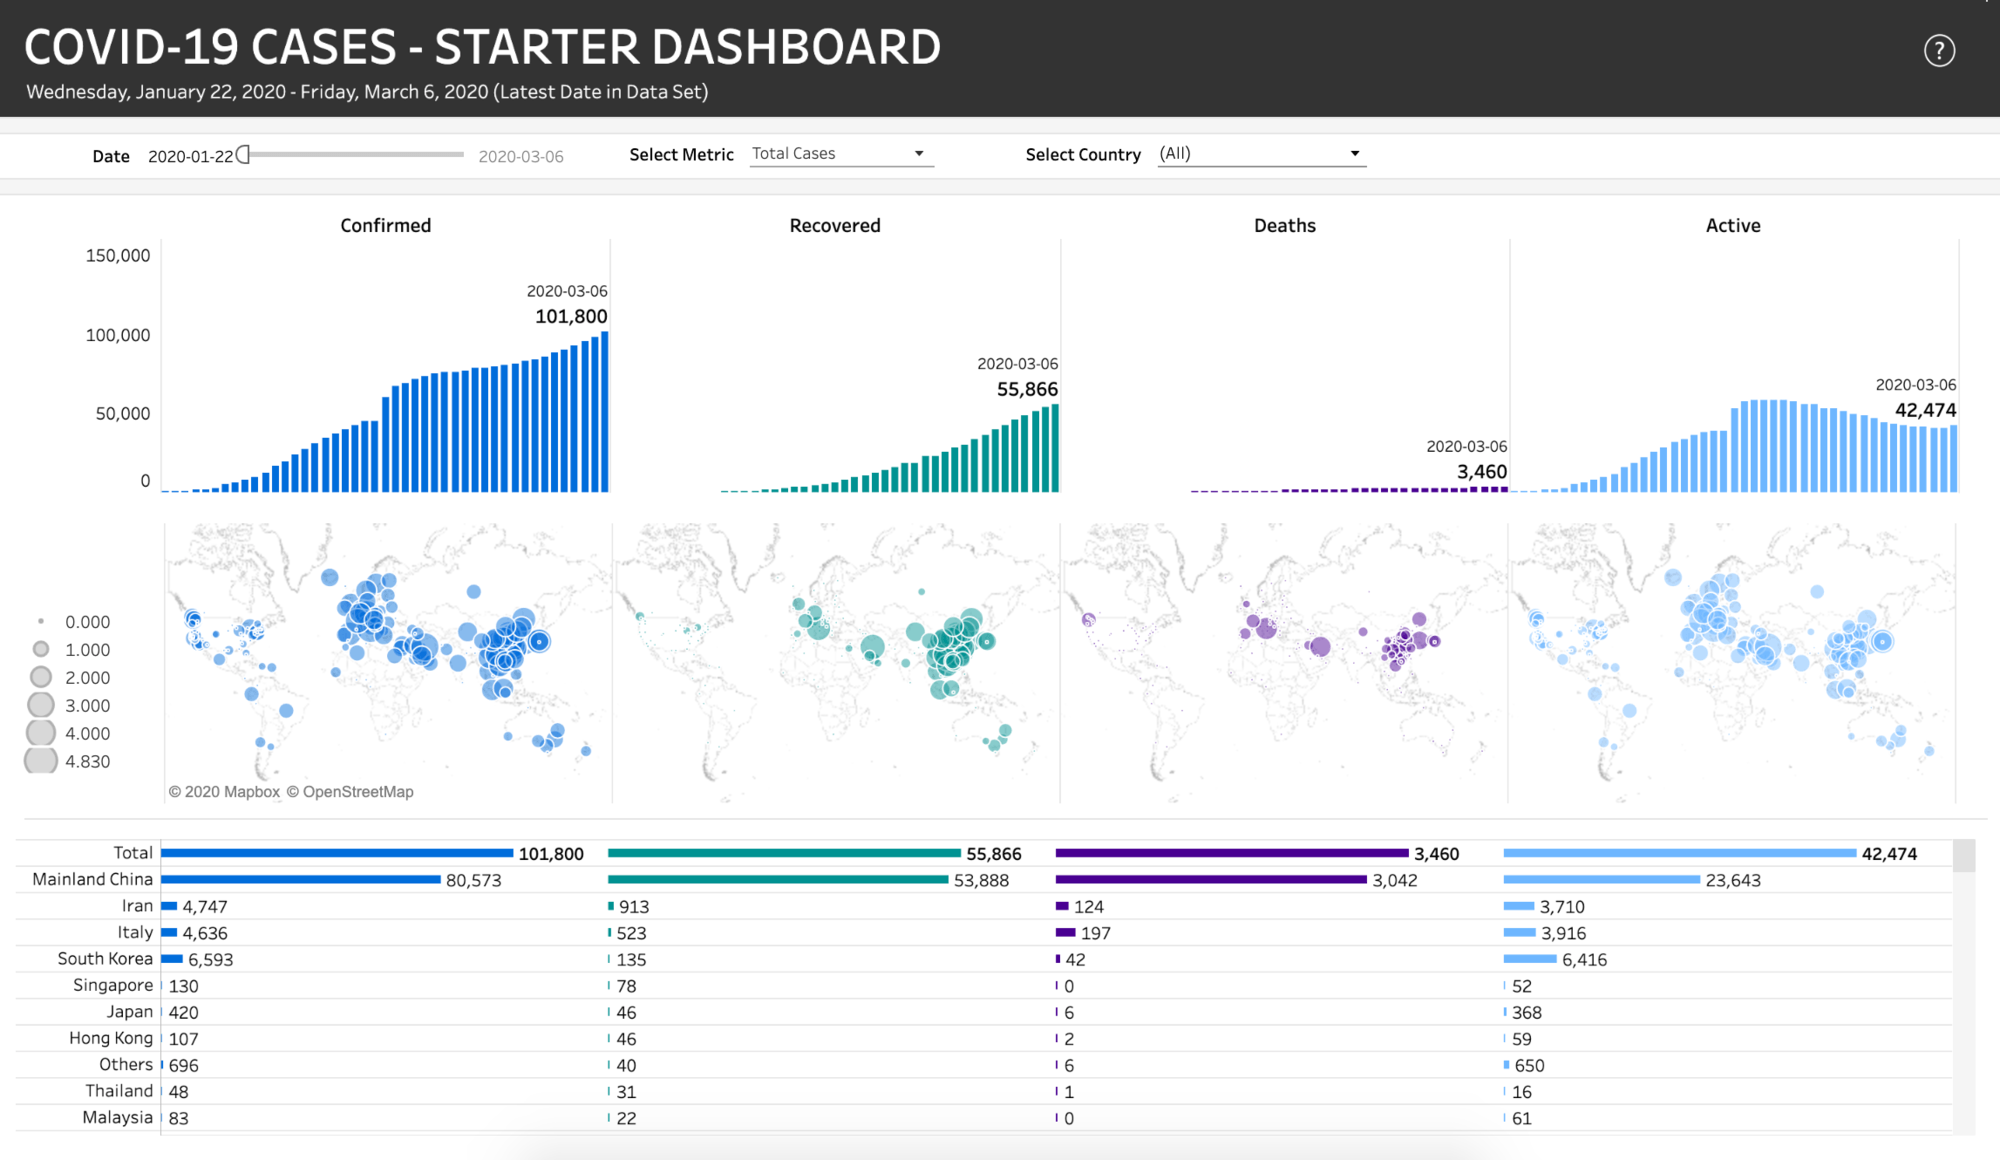 Coronavirus Covid 19 Data Hub Case Tracker Starter Dashboard Visualizations Tableau